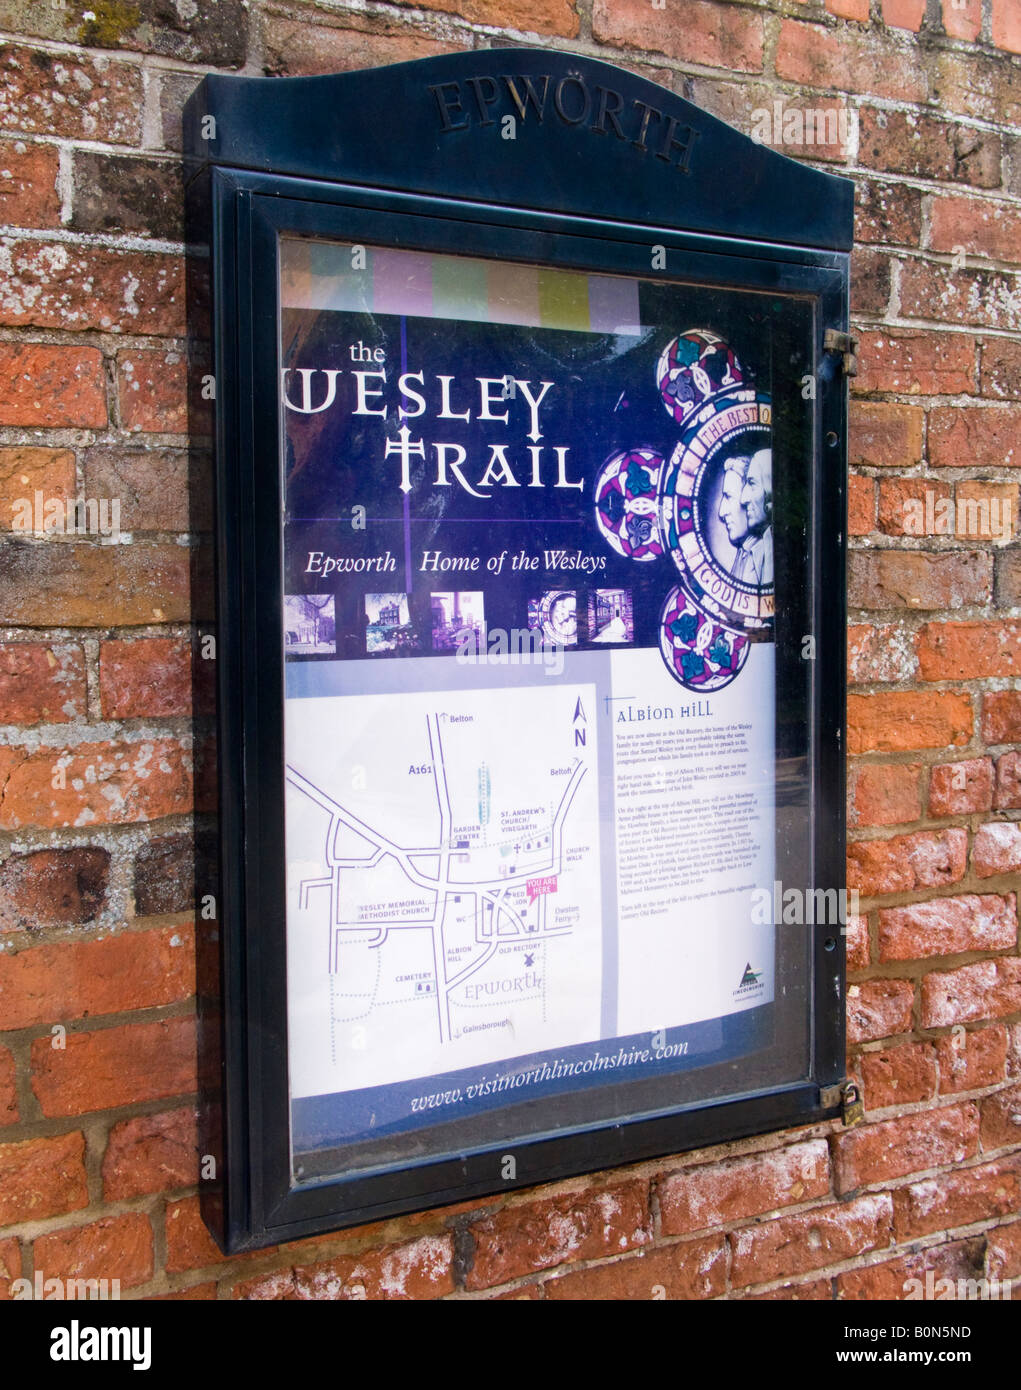 Wesley Trail noticeboard in the village of Epworth North Lincolnshire UK - Stock Image